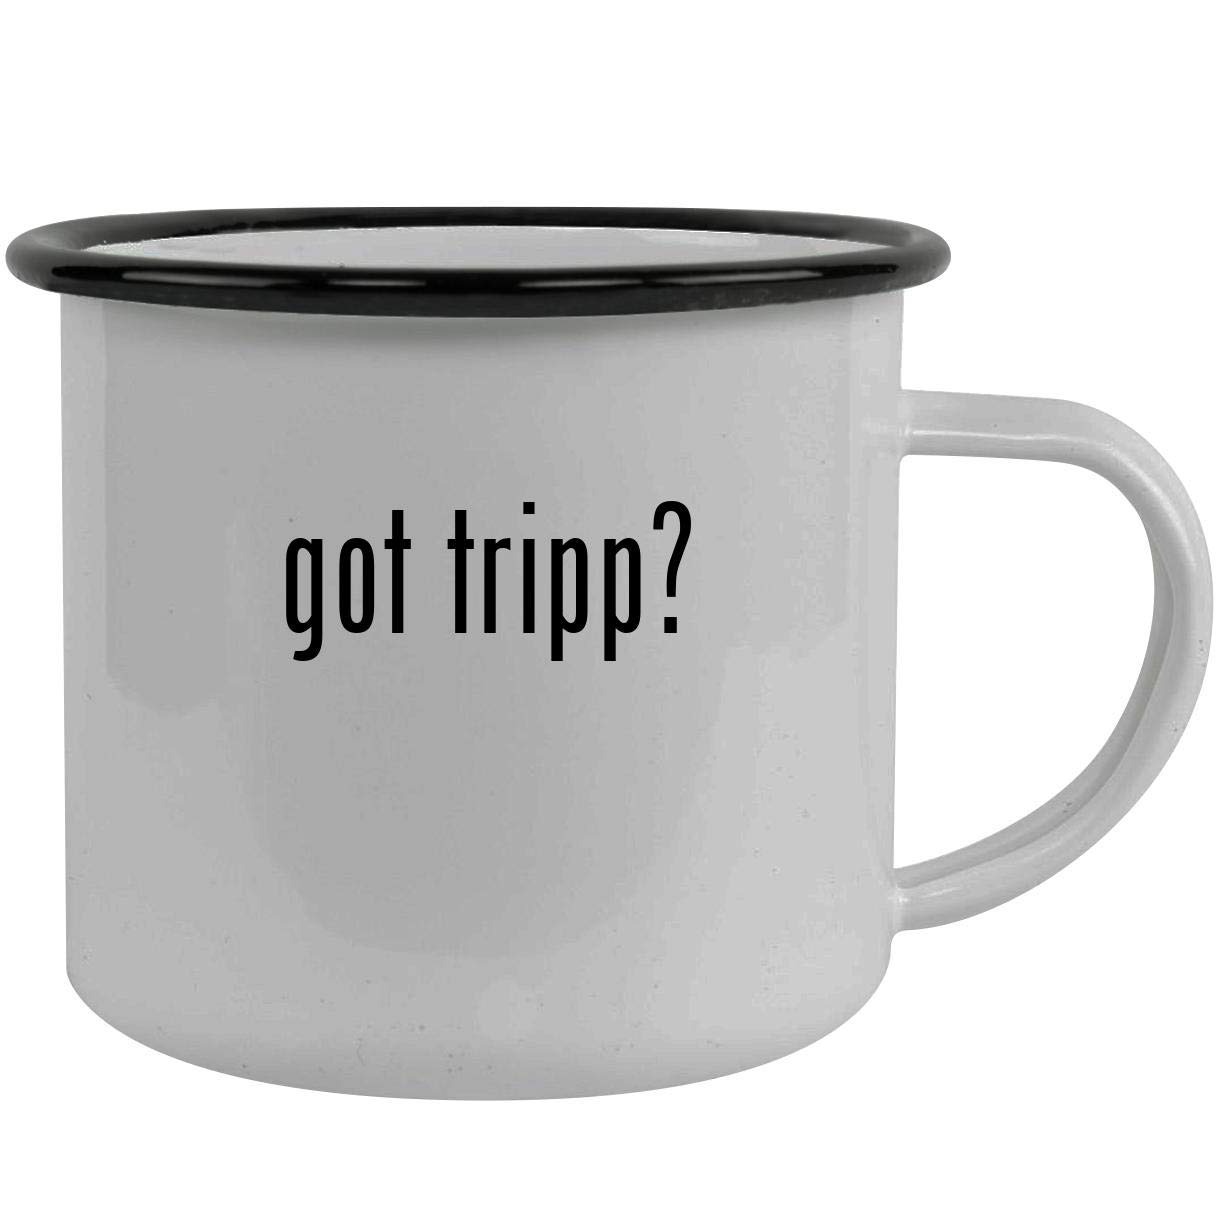 got tripp? - Stainless Steel 12oz Camping Mug, Black